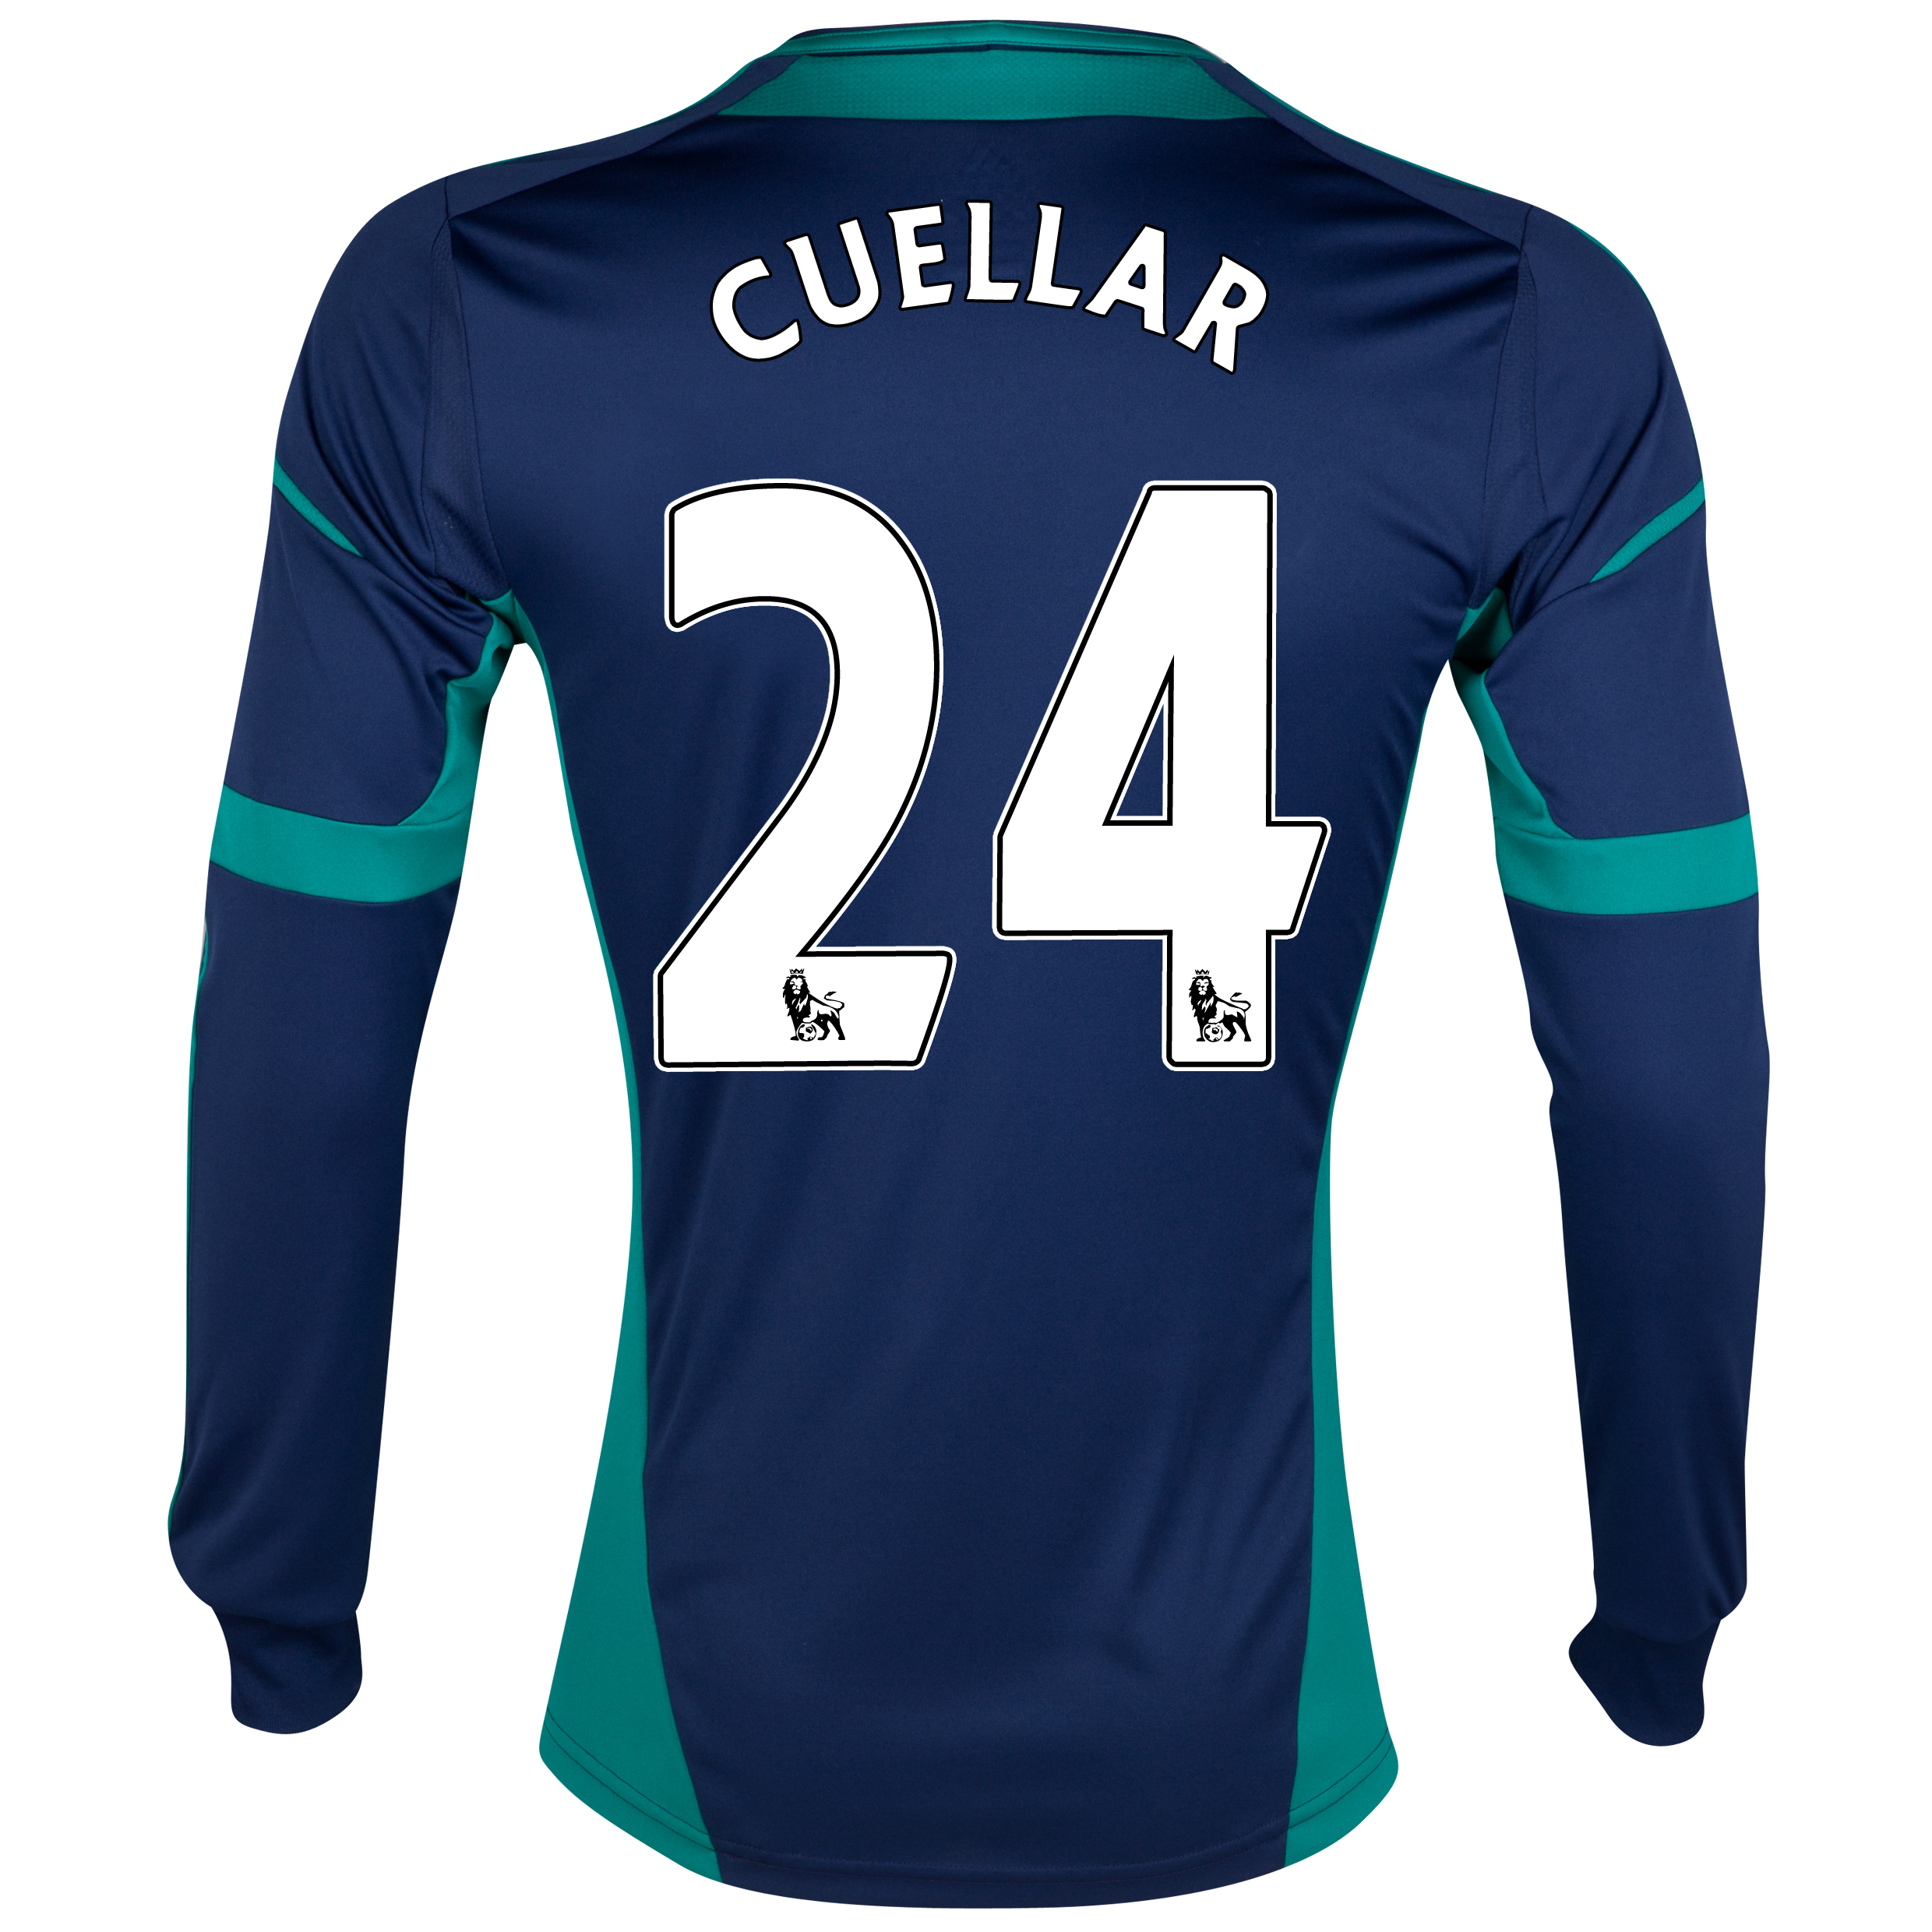 Sunderland Away Shirt 2012/13 - Long Sleeved - Junior with Cuellar 24 printing